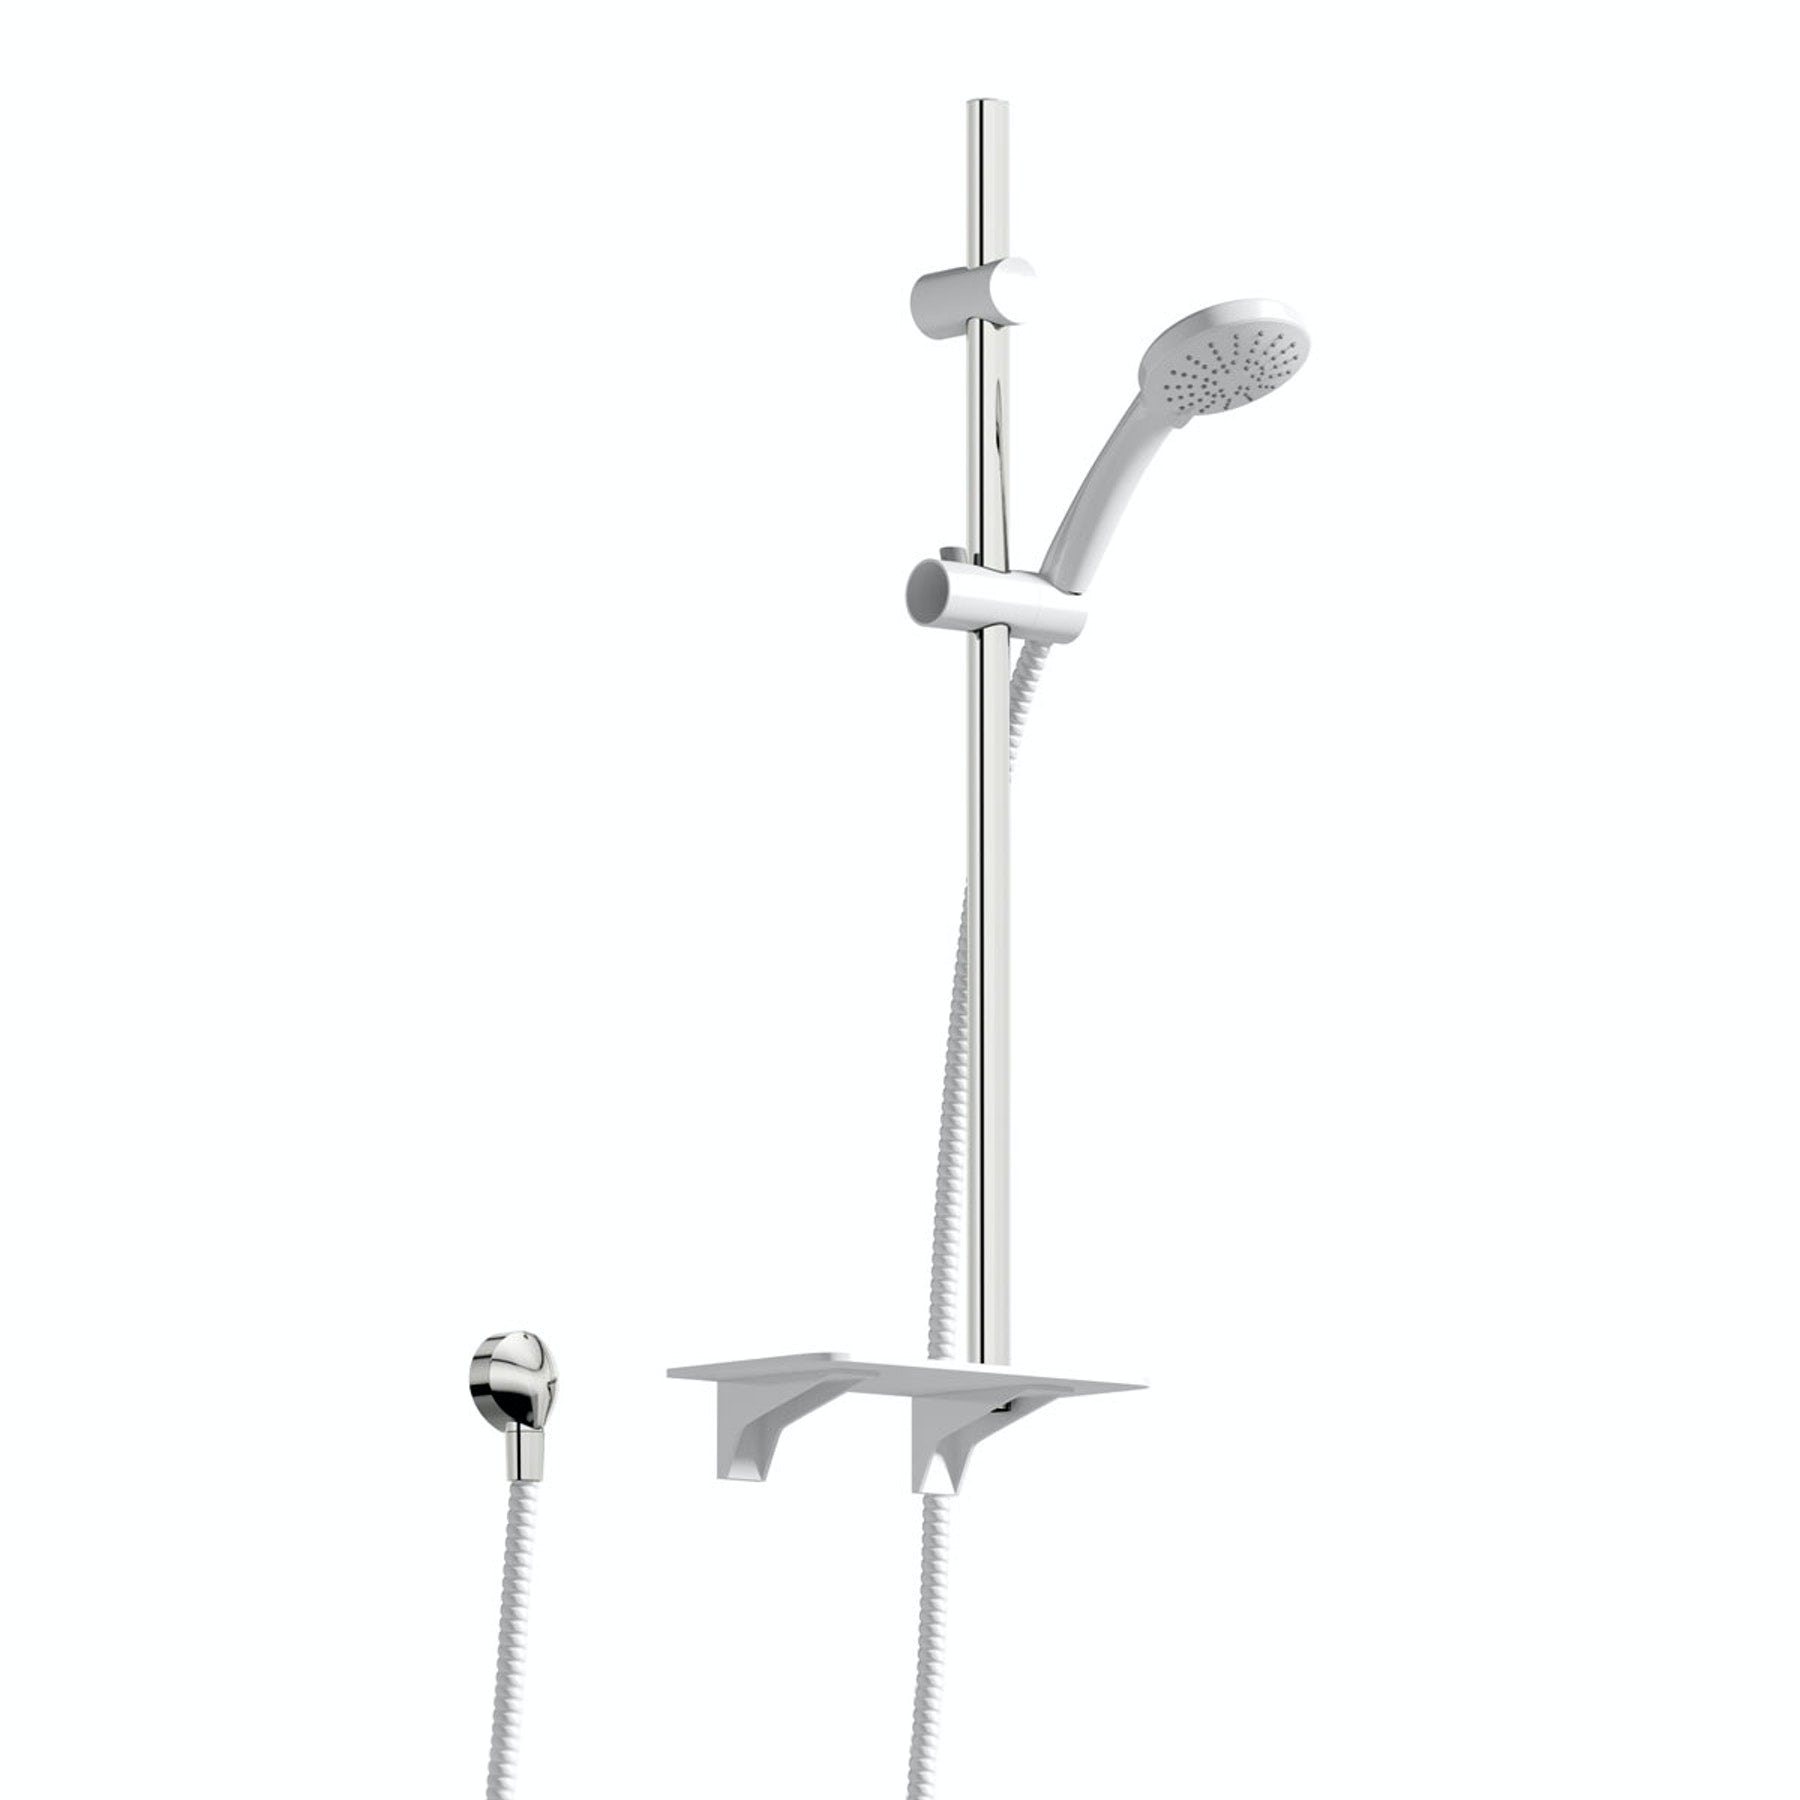 Orchard Pure sliding shower rail and shelf kit